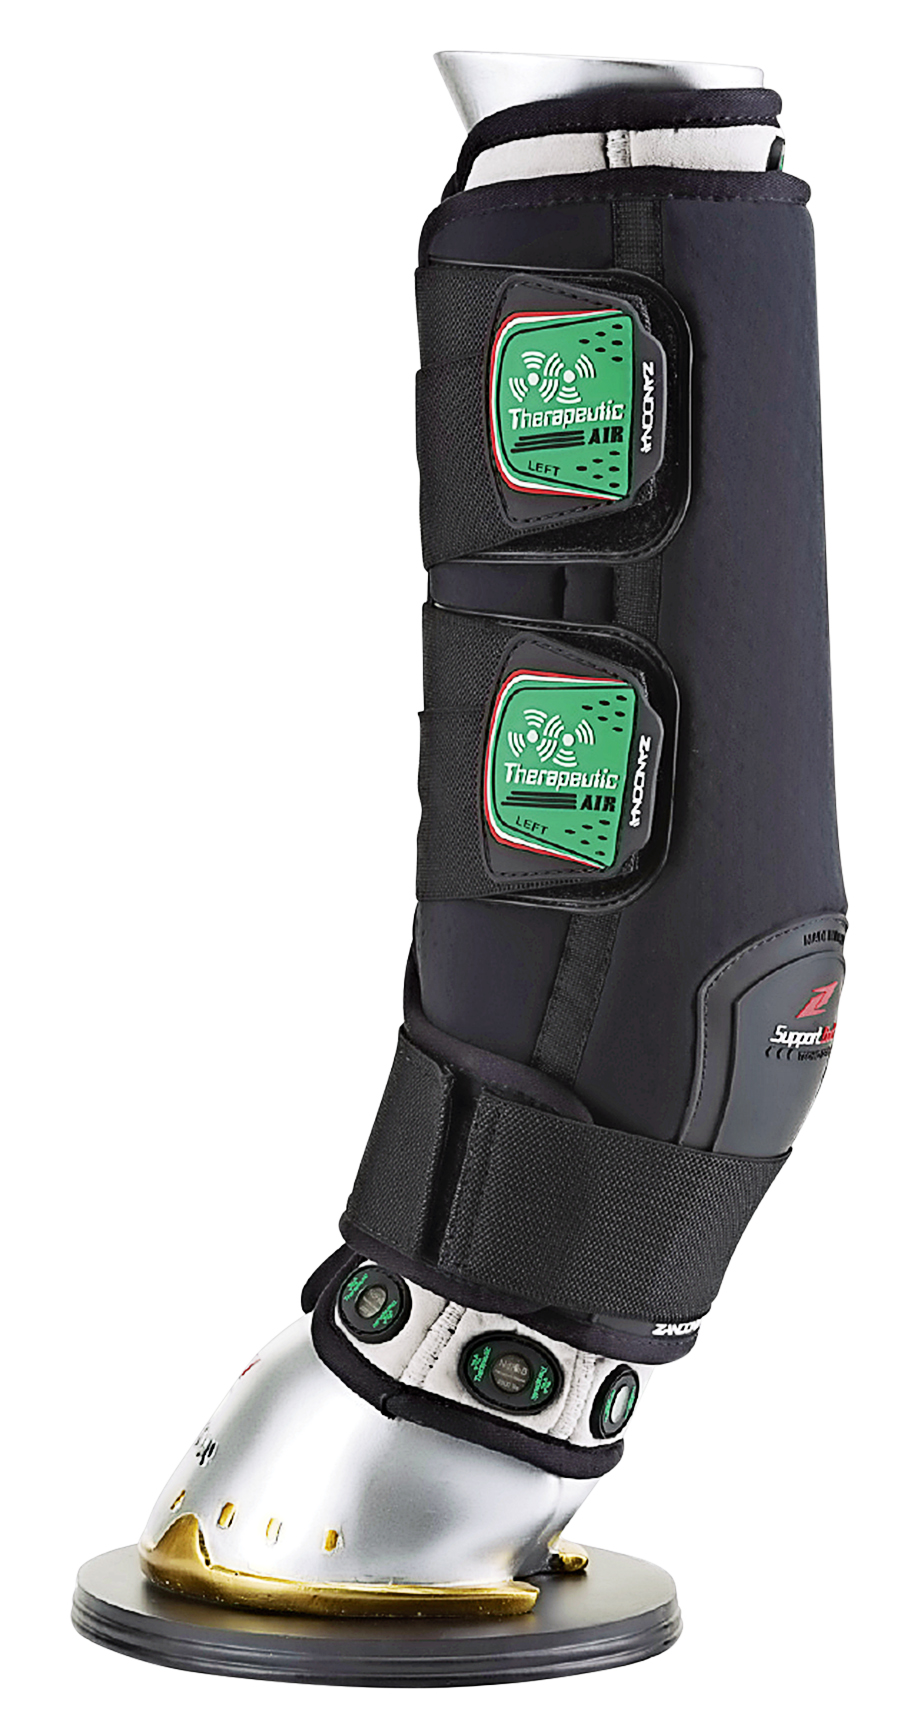 The Therapeutic Support Boot Air from Zandona